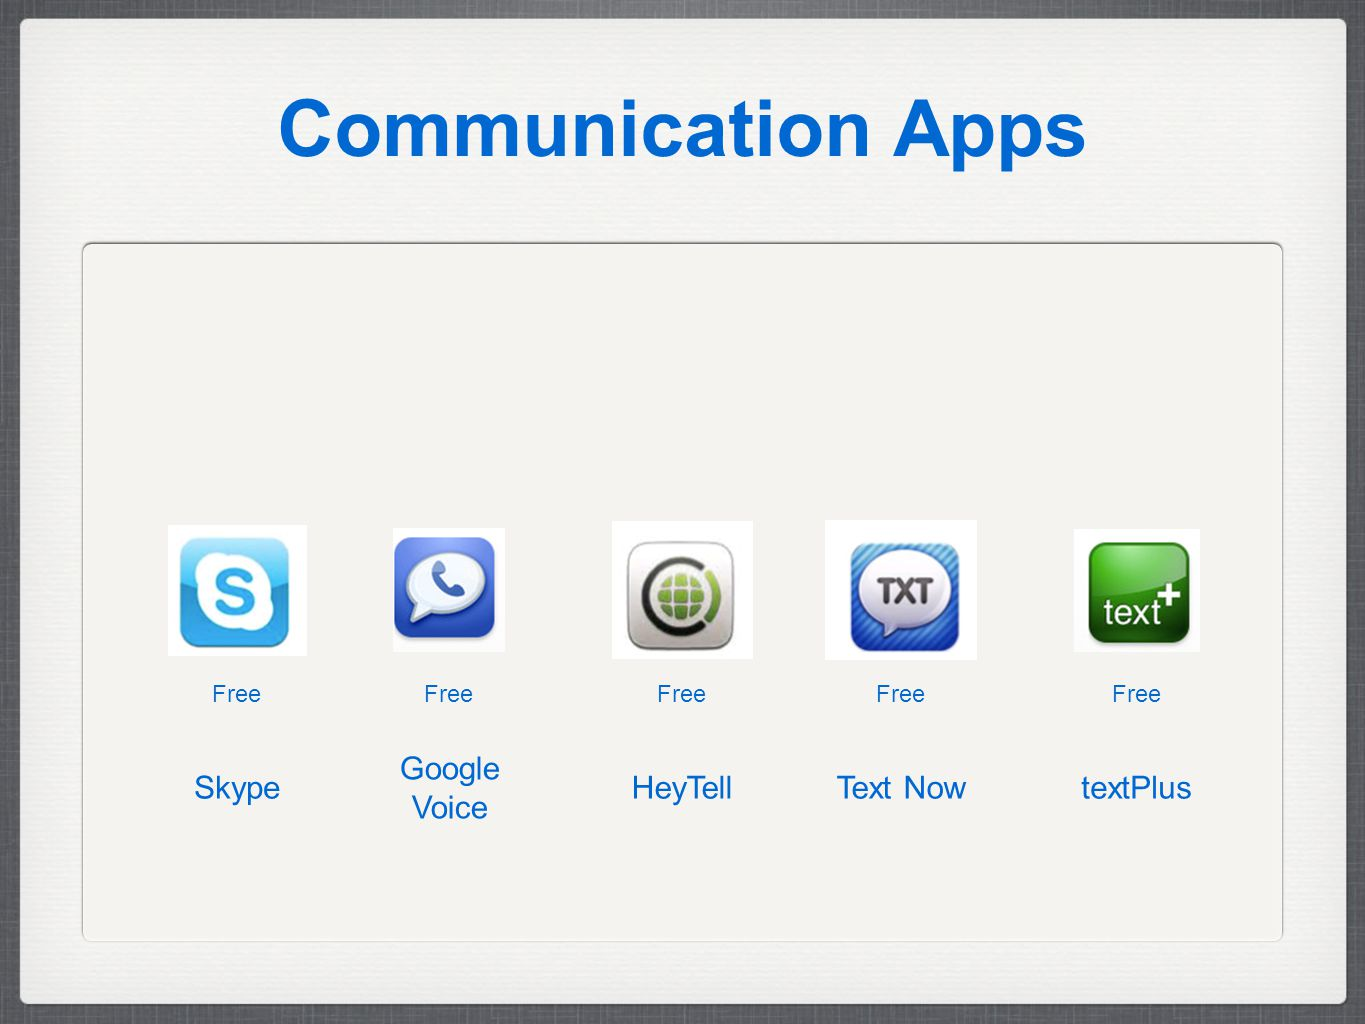 Communication Apps Free textPlusText NowHeyTell Google Voice Skype